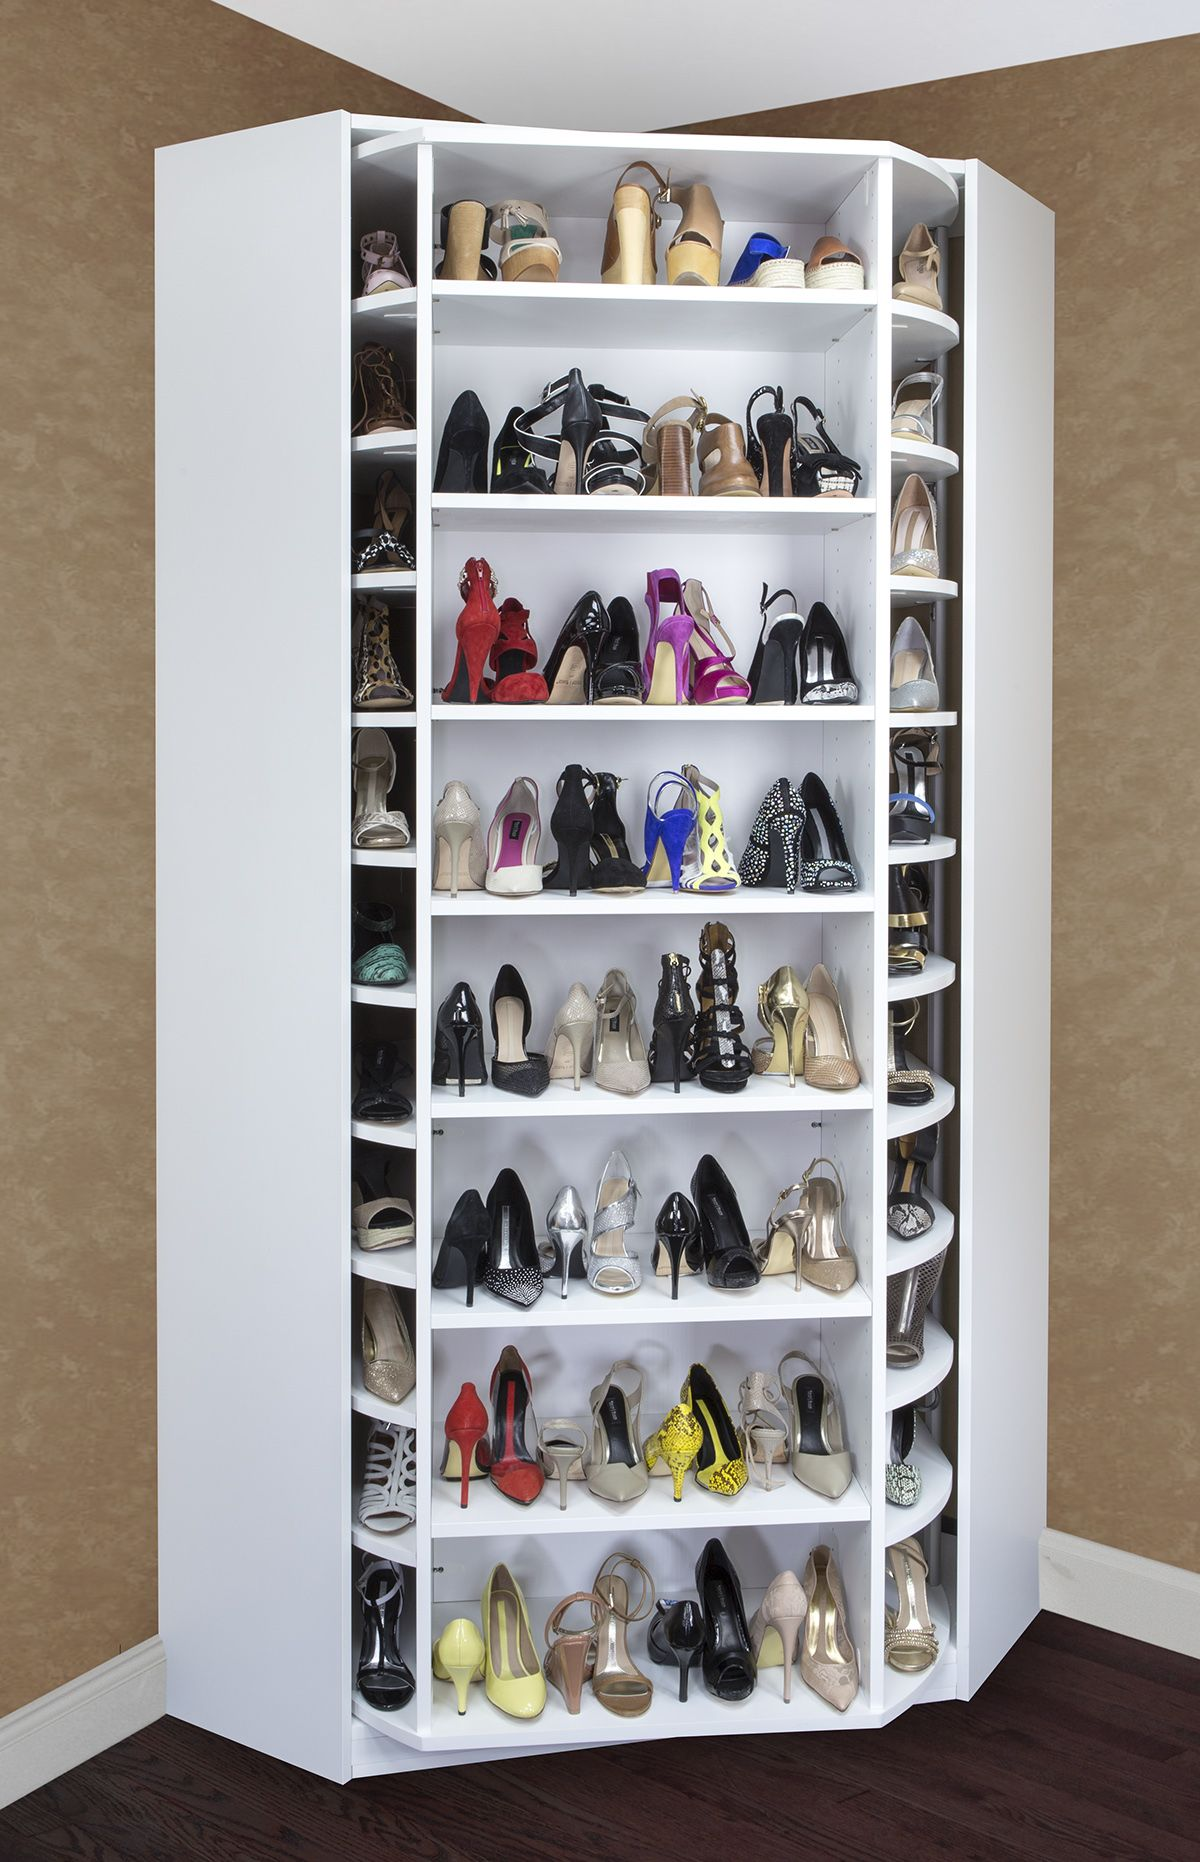 new home shoe shelves and closet keller dream pin rack space house boot reveal my brighton closets on